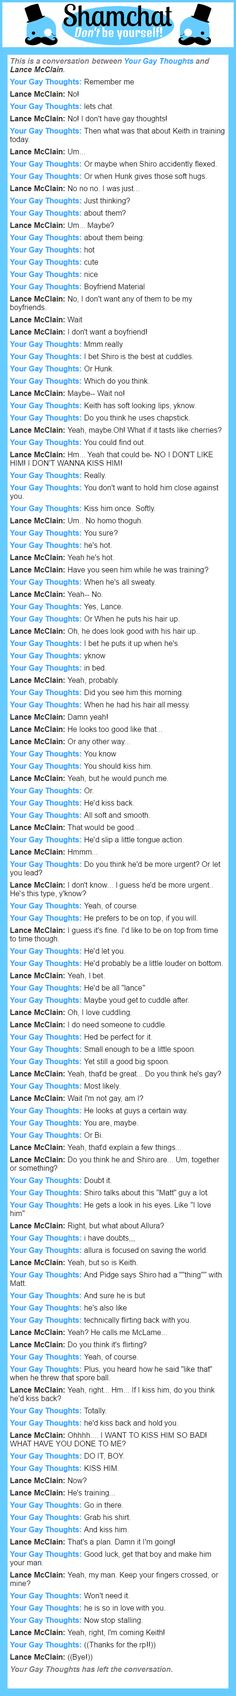 A conversation between Lance McClain and Your Gay Thoughts